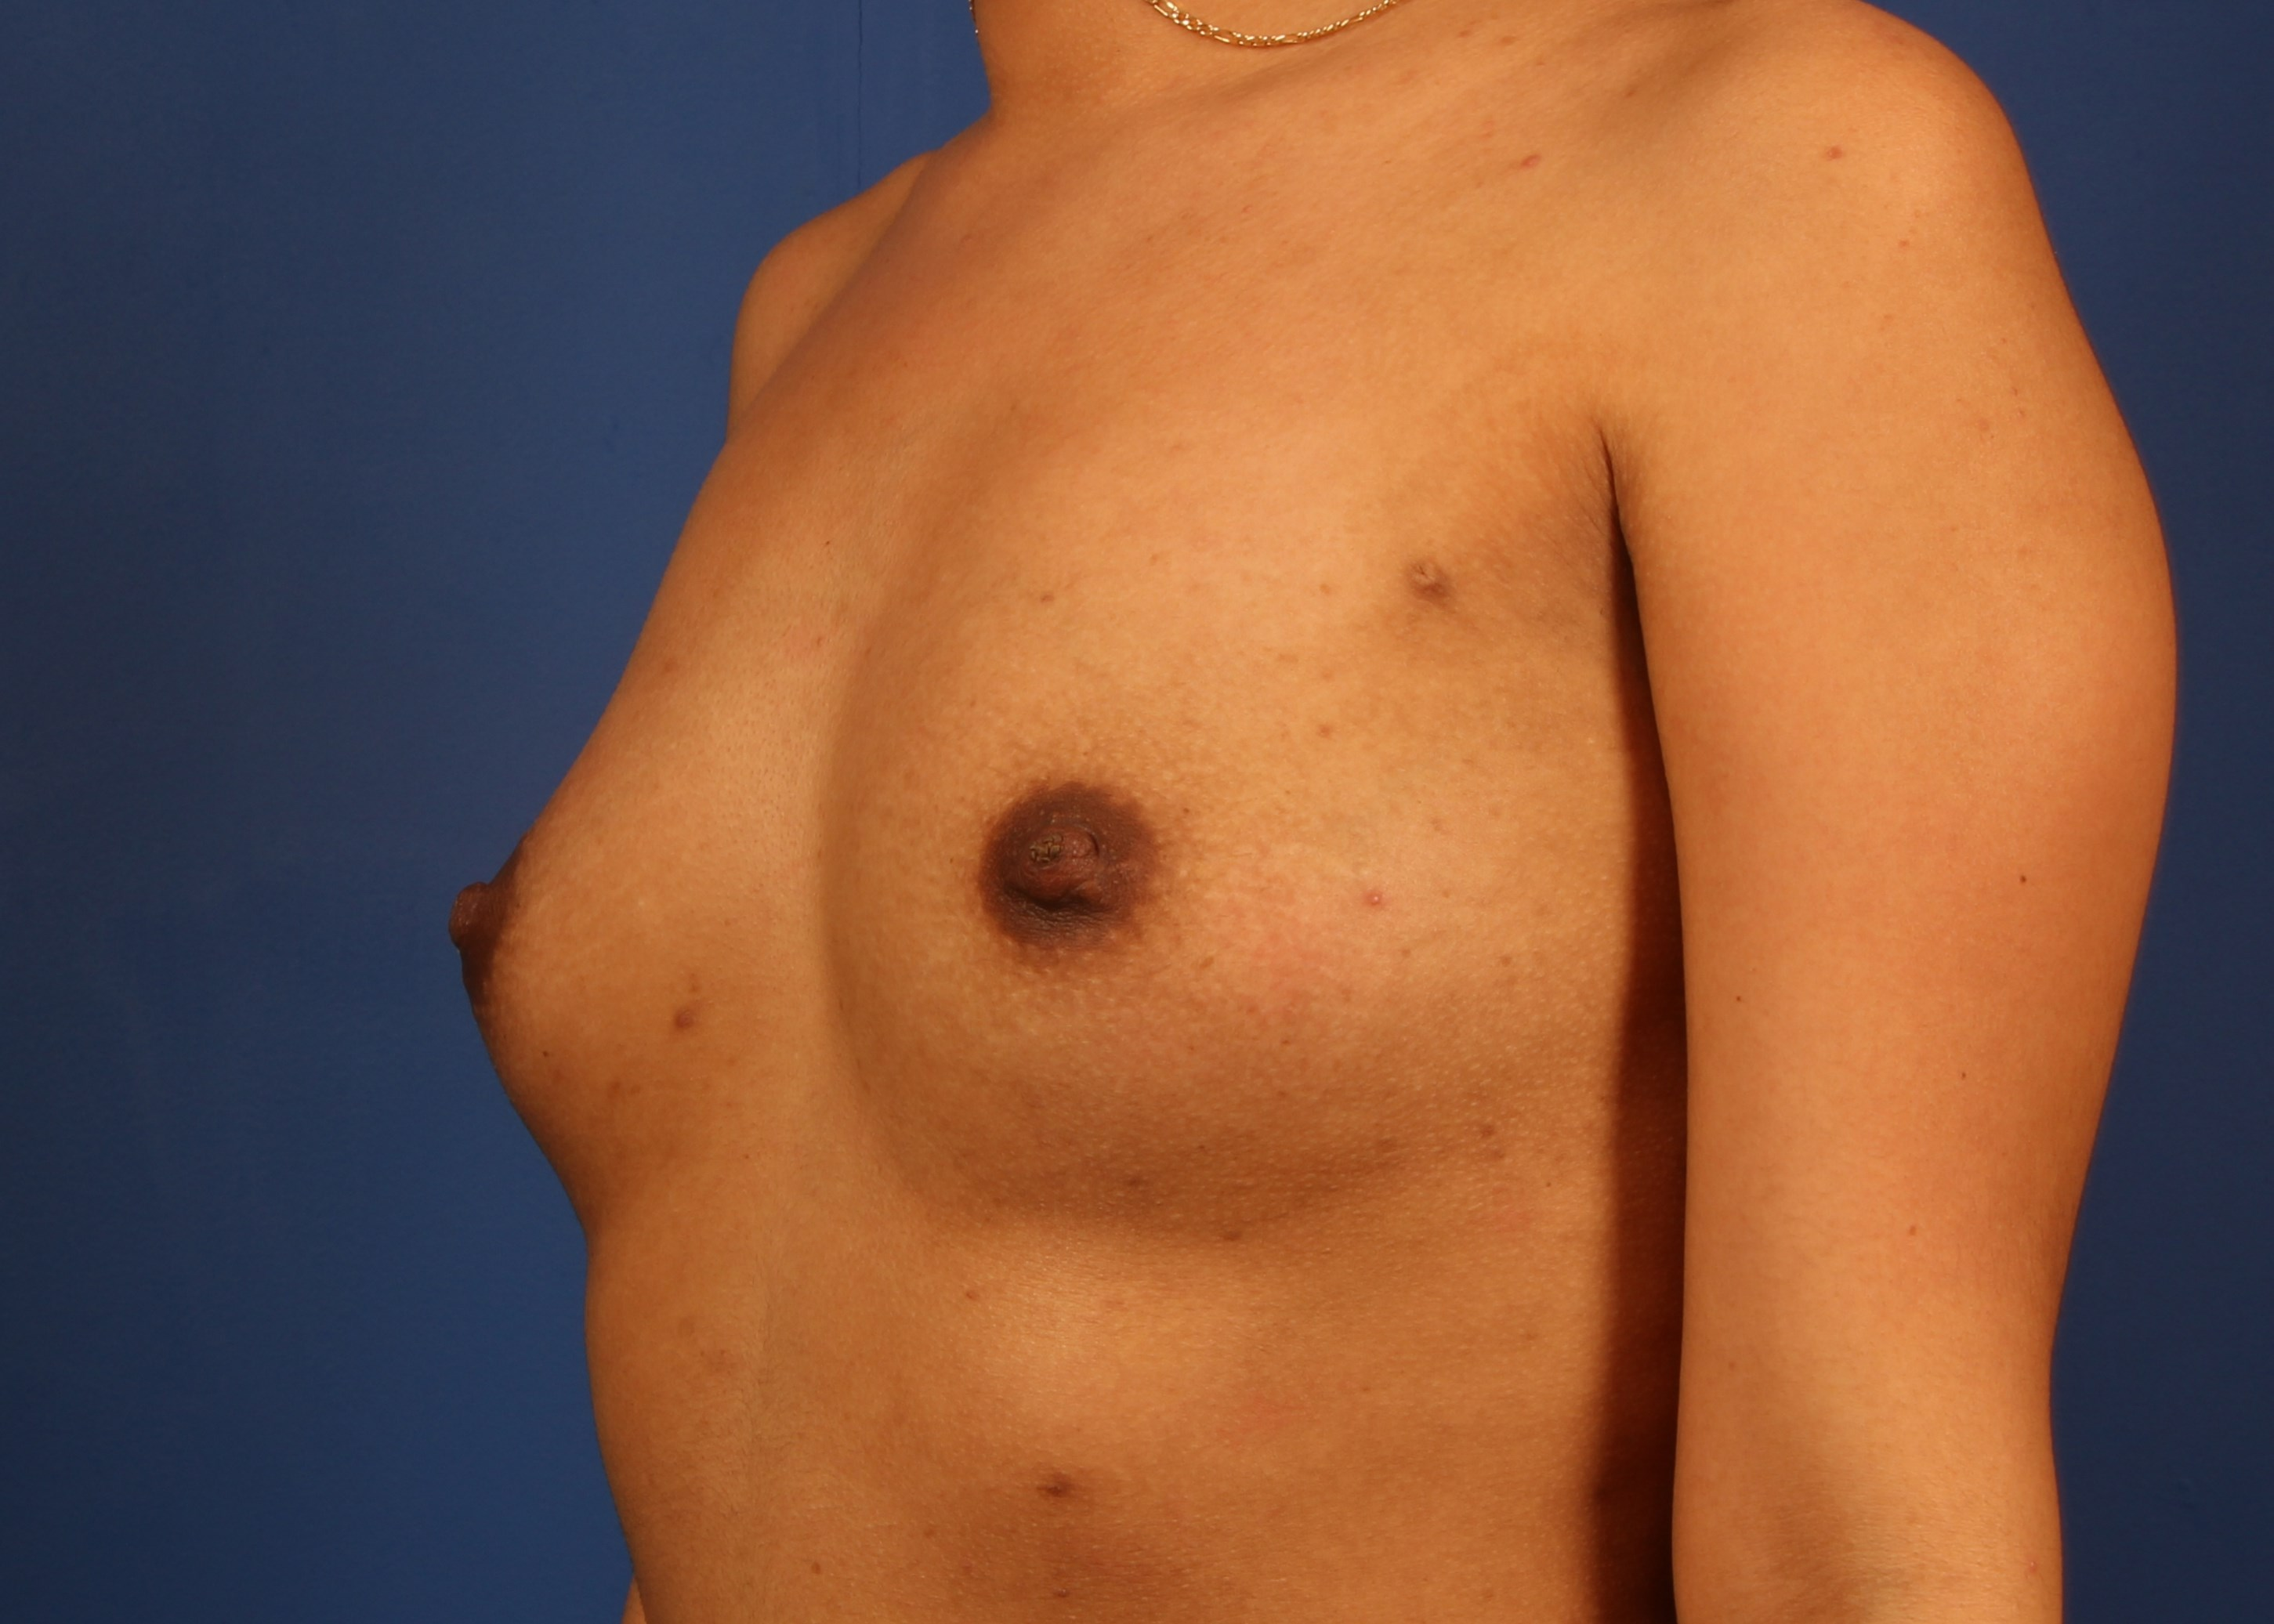 Silicone Implants Before - Dr Mata